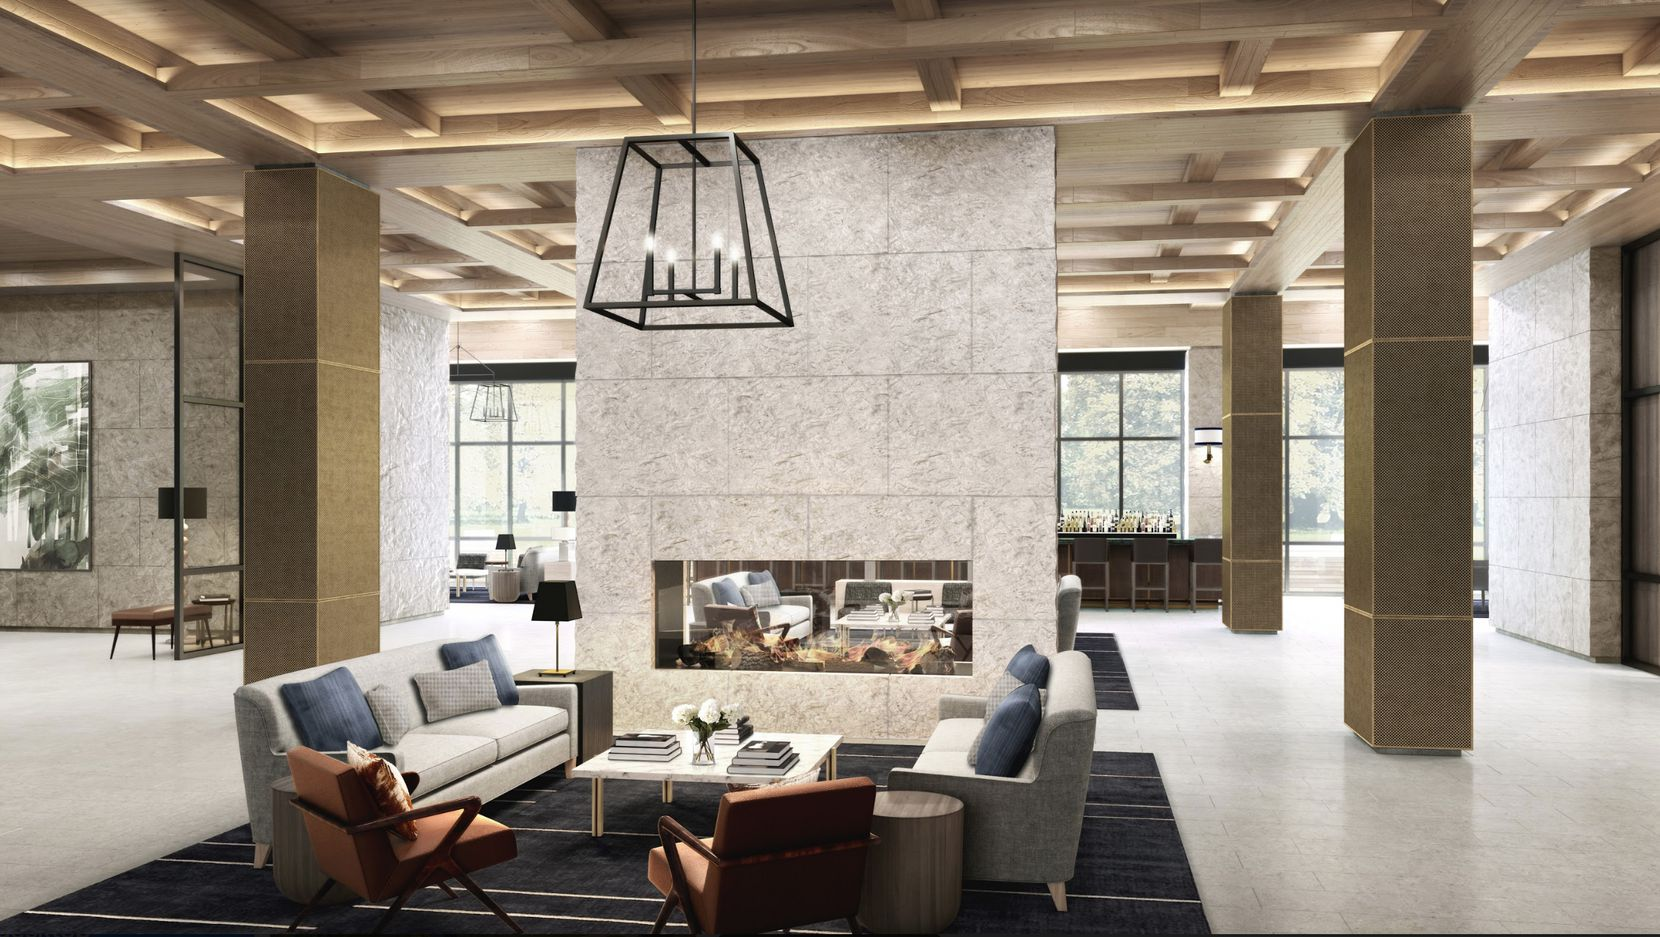 The hotel is being built in what Omni calls a Texas modern style.